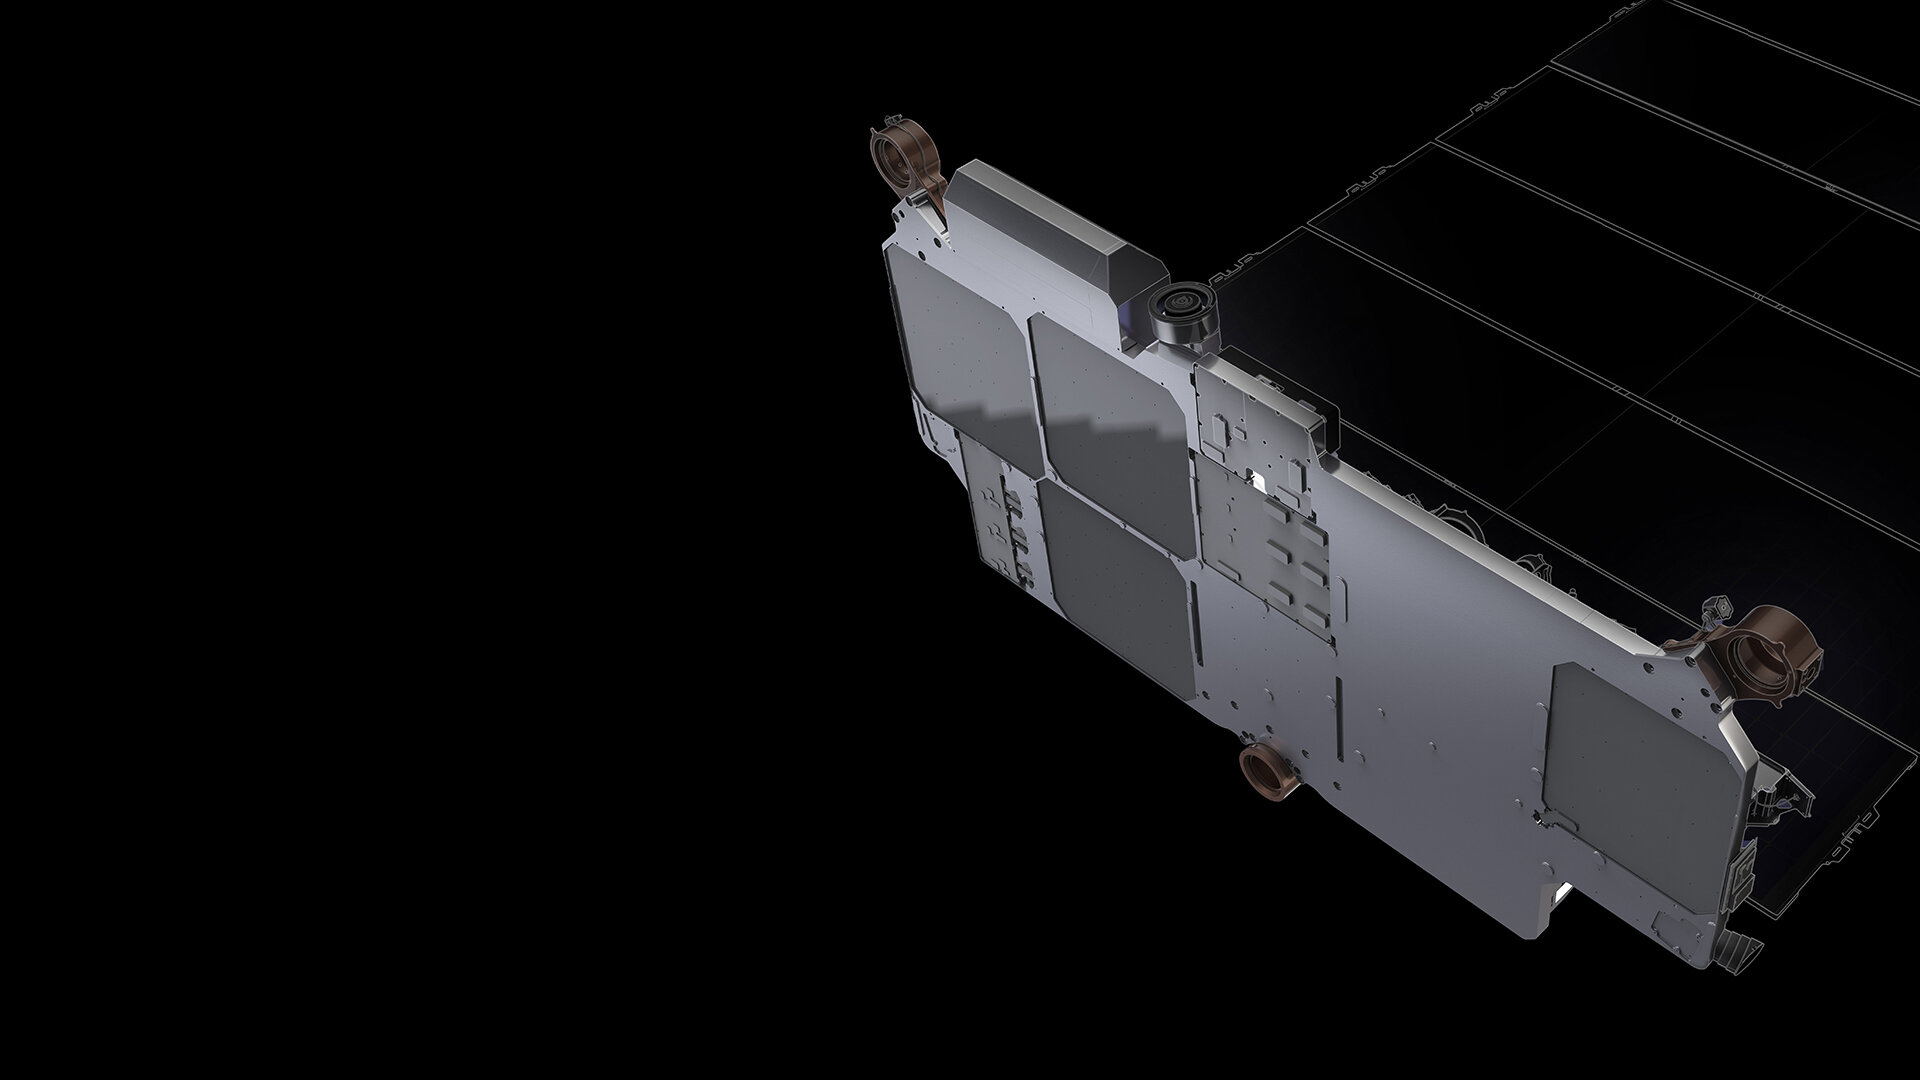 Starlink's 4 phased array antennas, which communicate with Earth via ground stations (Image: SpaceX)